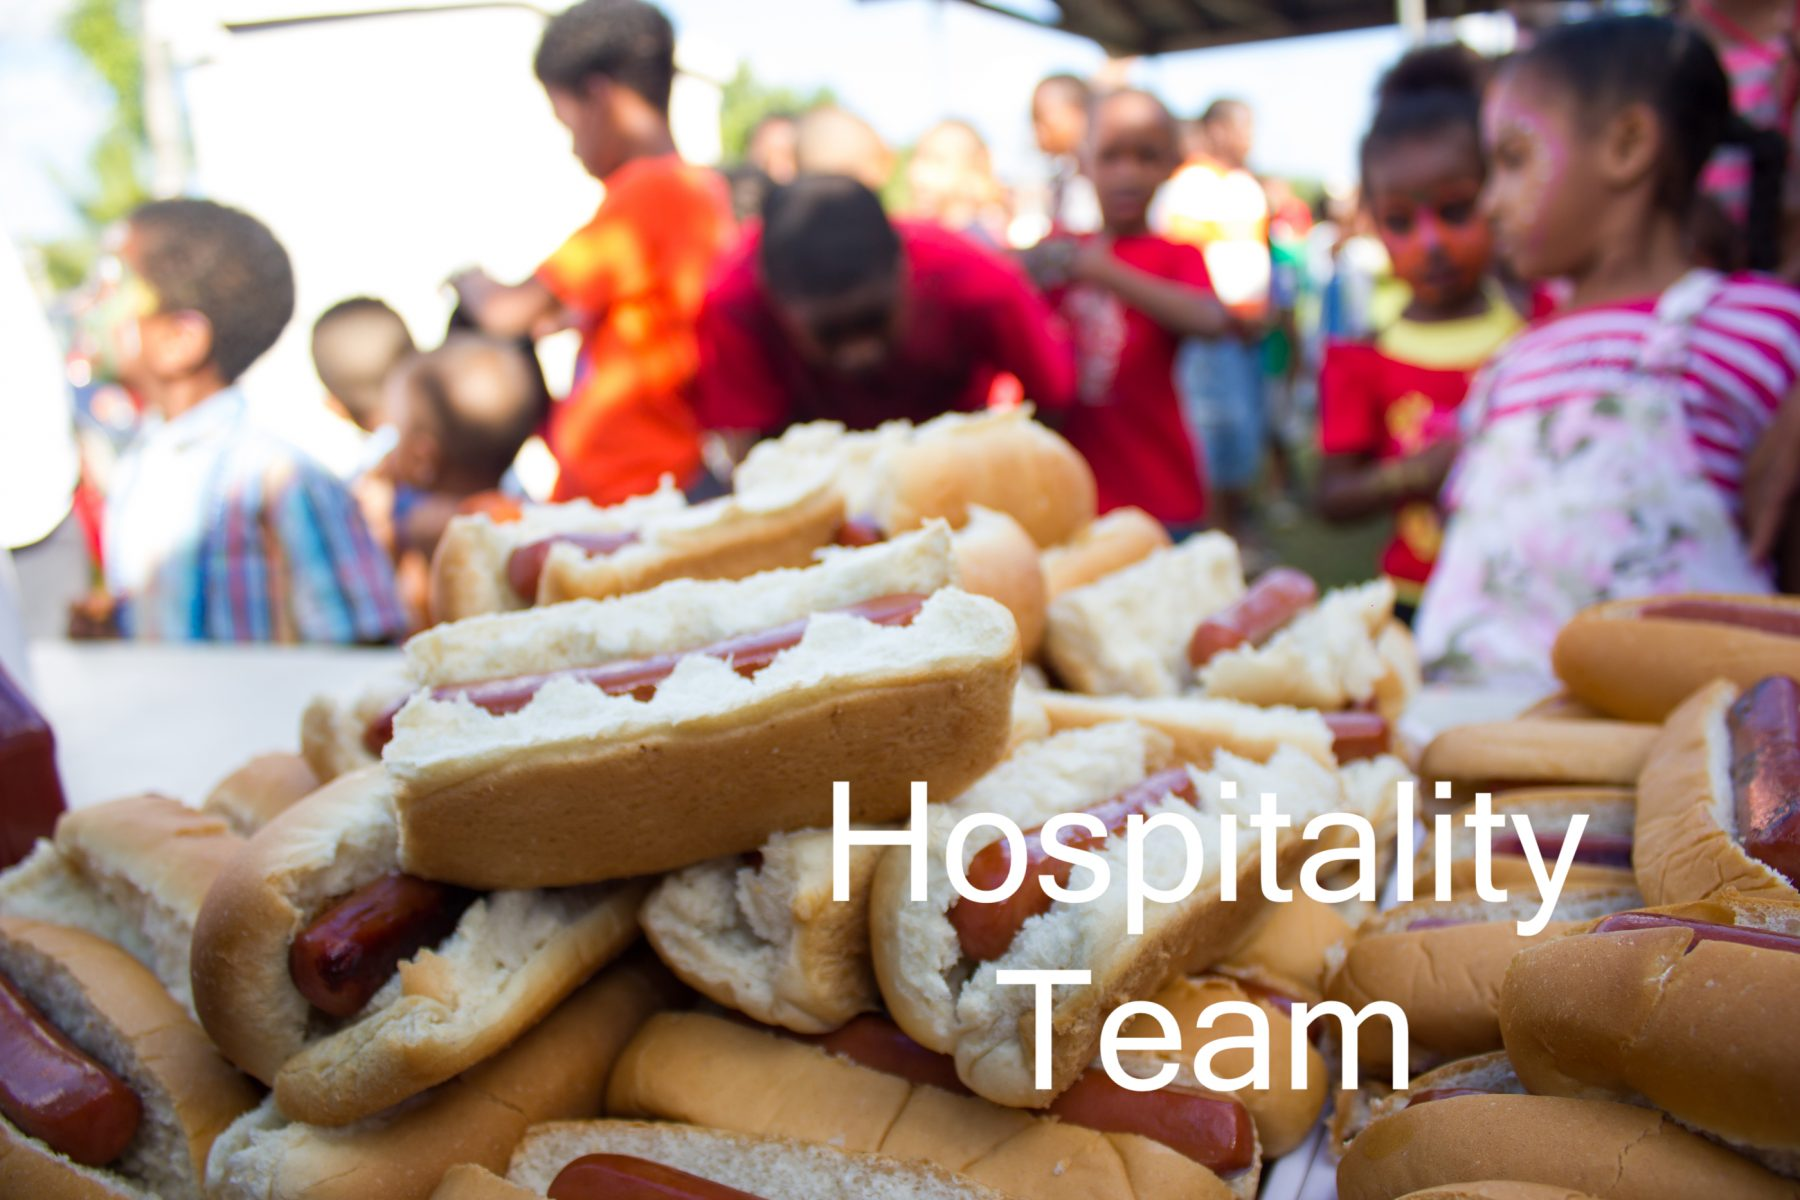 HOSPITALITY TEAM OPPORTUNITIES